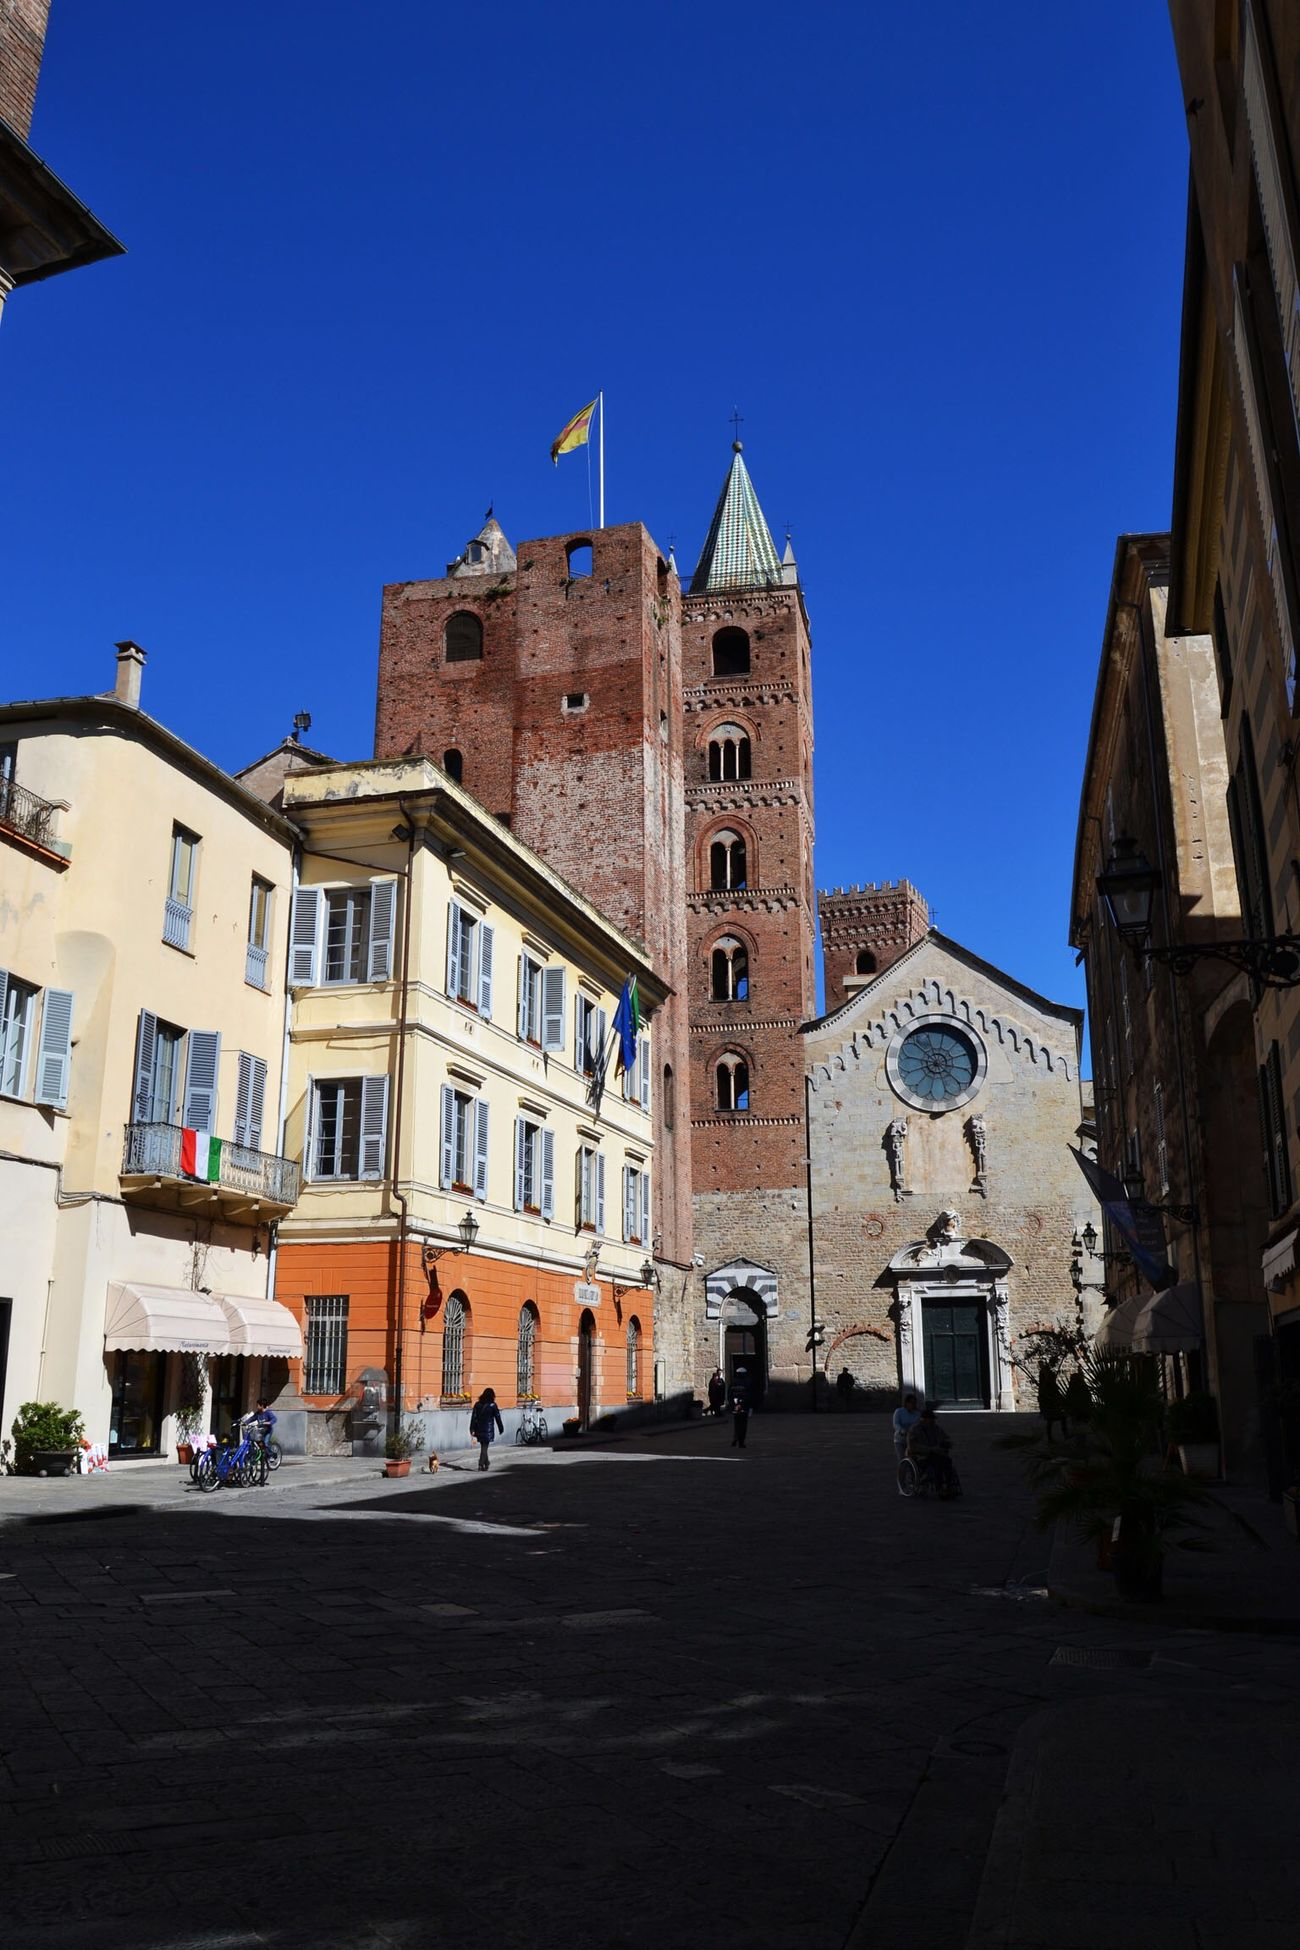 Albenga Liguria,Italy Architecture Building Exterior Built Structure Blue Clear Sky Day Sky Outdoors City No People